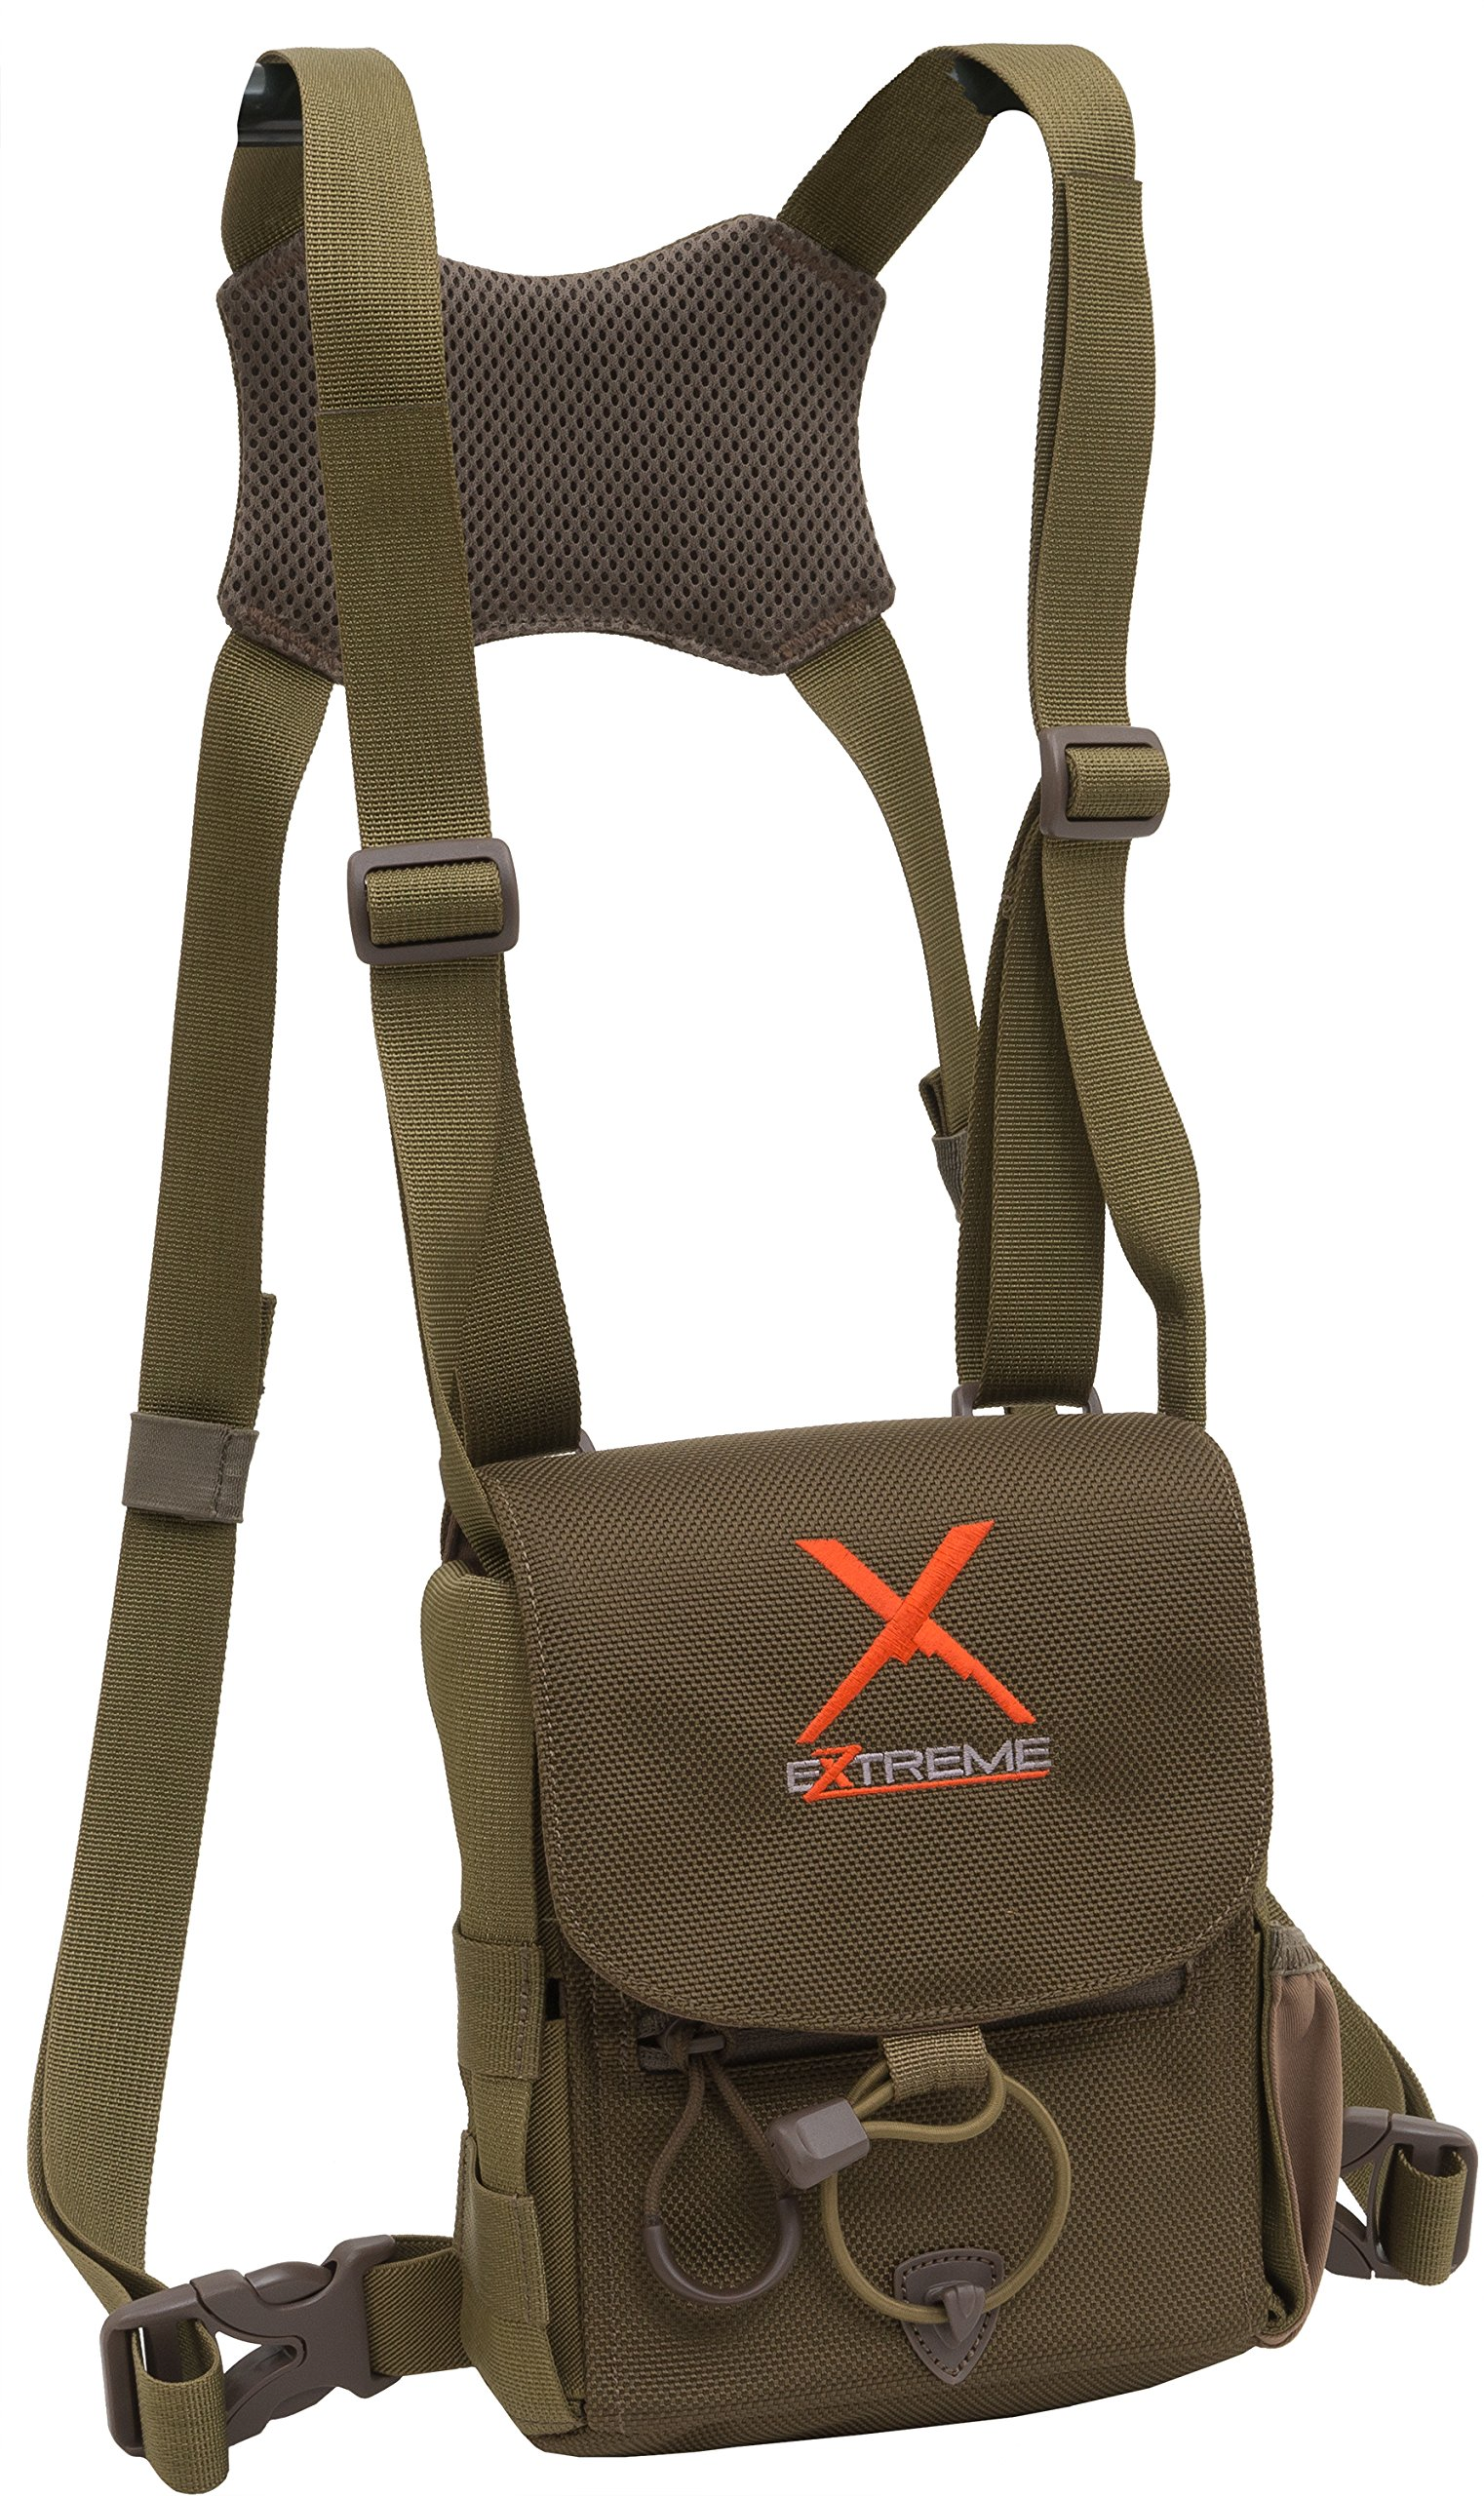 ALPS OutdoorZ Extreme Bino Harness X by ALPS OutdoorZ